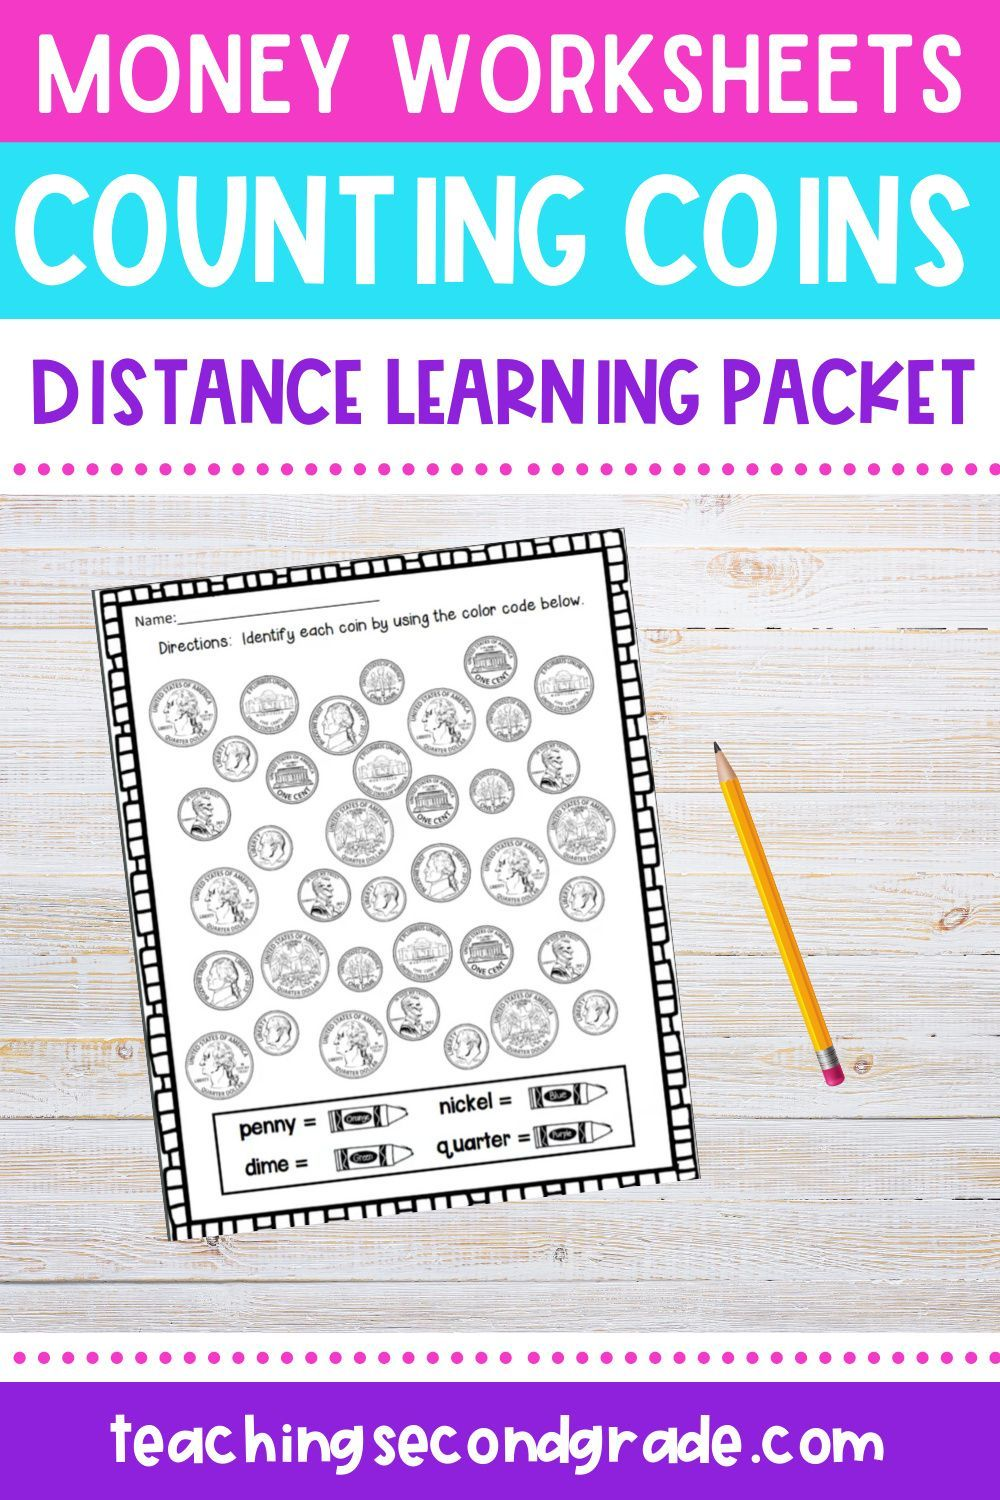 Money Worksheets Counting Coins Great Practice For 1st And 2nd Grade Money Worksheets Distance Learning Math Activities [ 1500 x 1000 Pixel ]